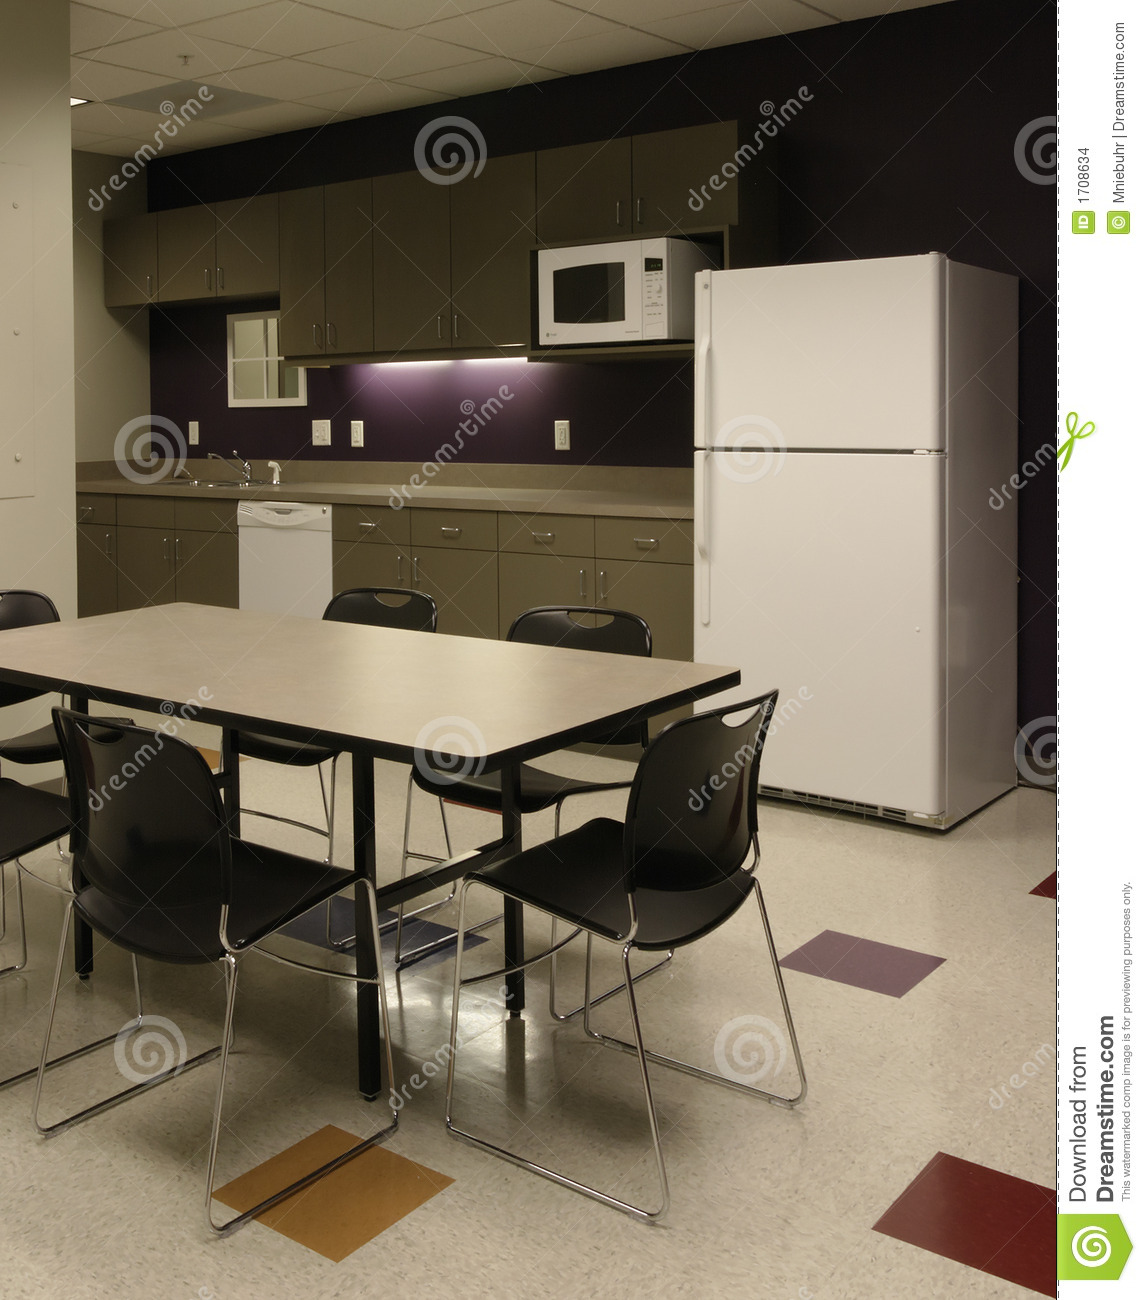 Break Room Chairs Office Break Room Cafe Employee Kitchen Space Stock